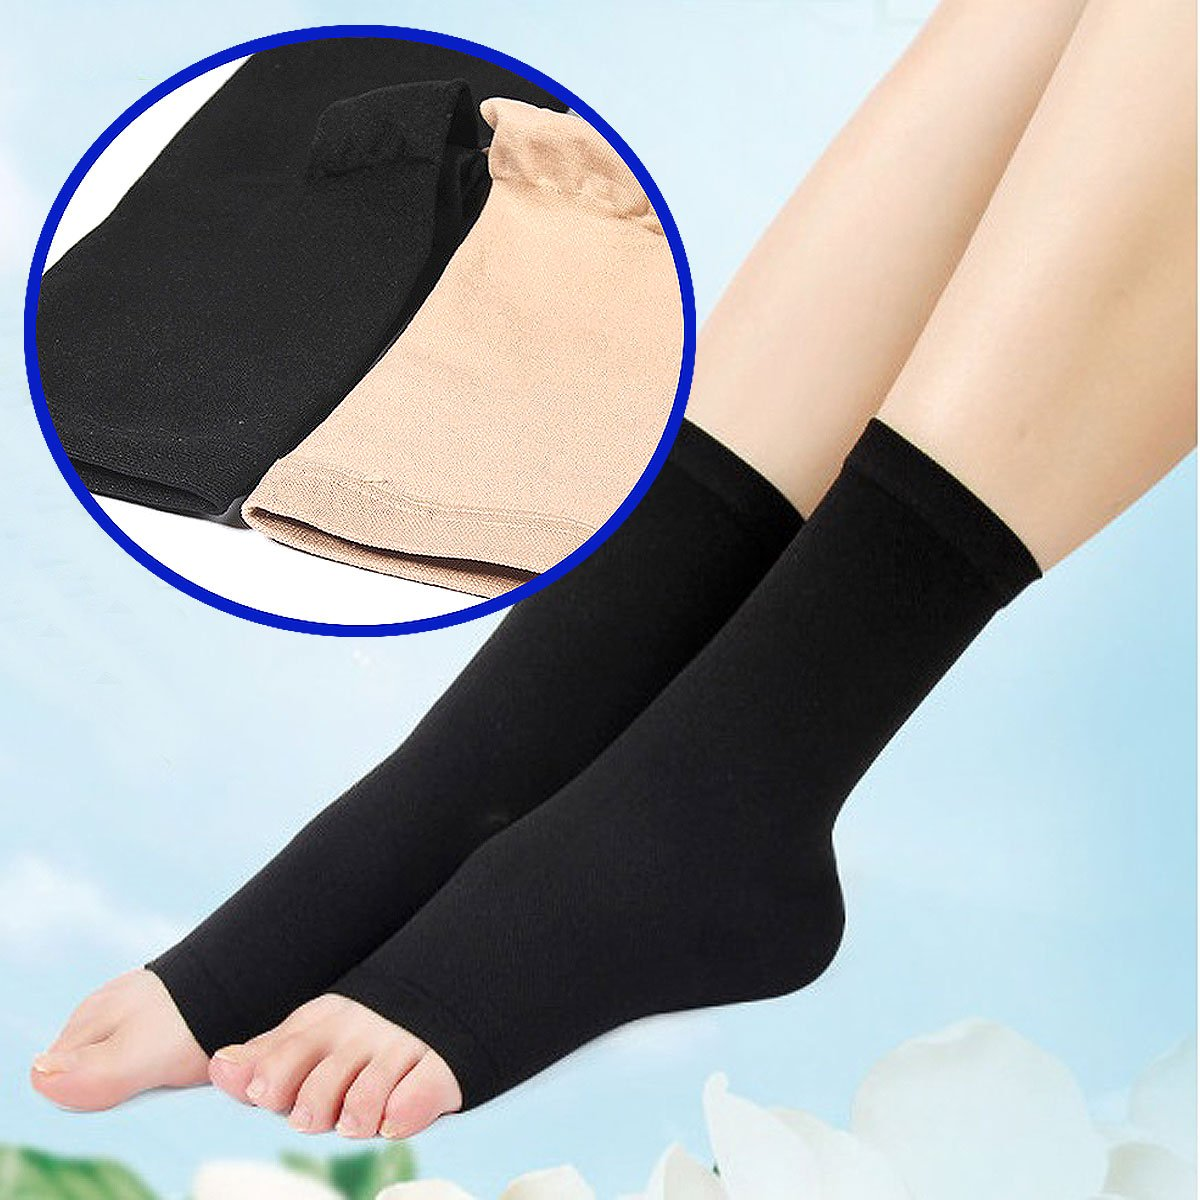 Medical Circulation Compression Socks Elastic Sock Varicose Vein Ankle Support Stockings with Open Toe (BLACK)